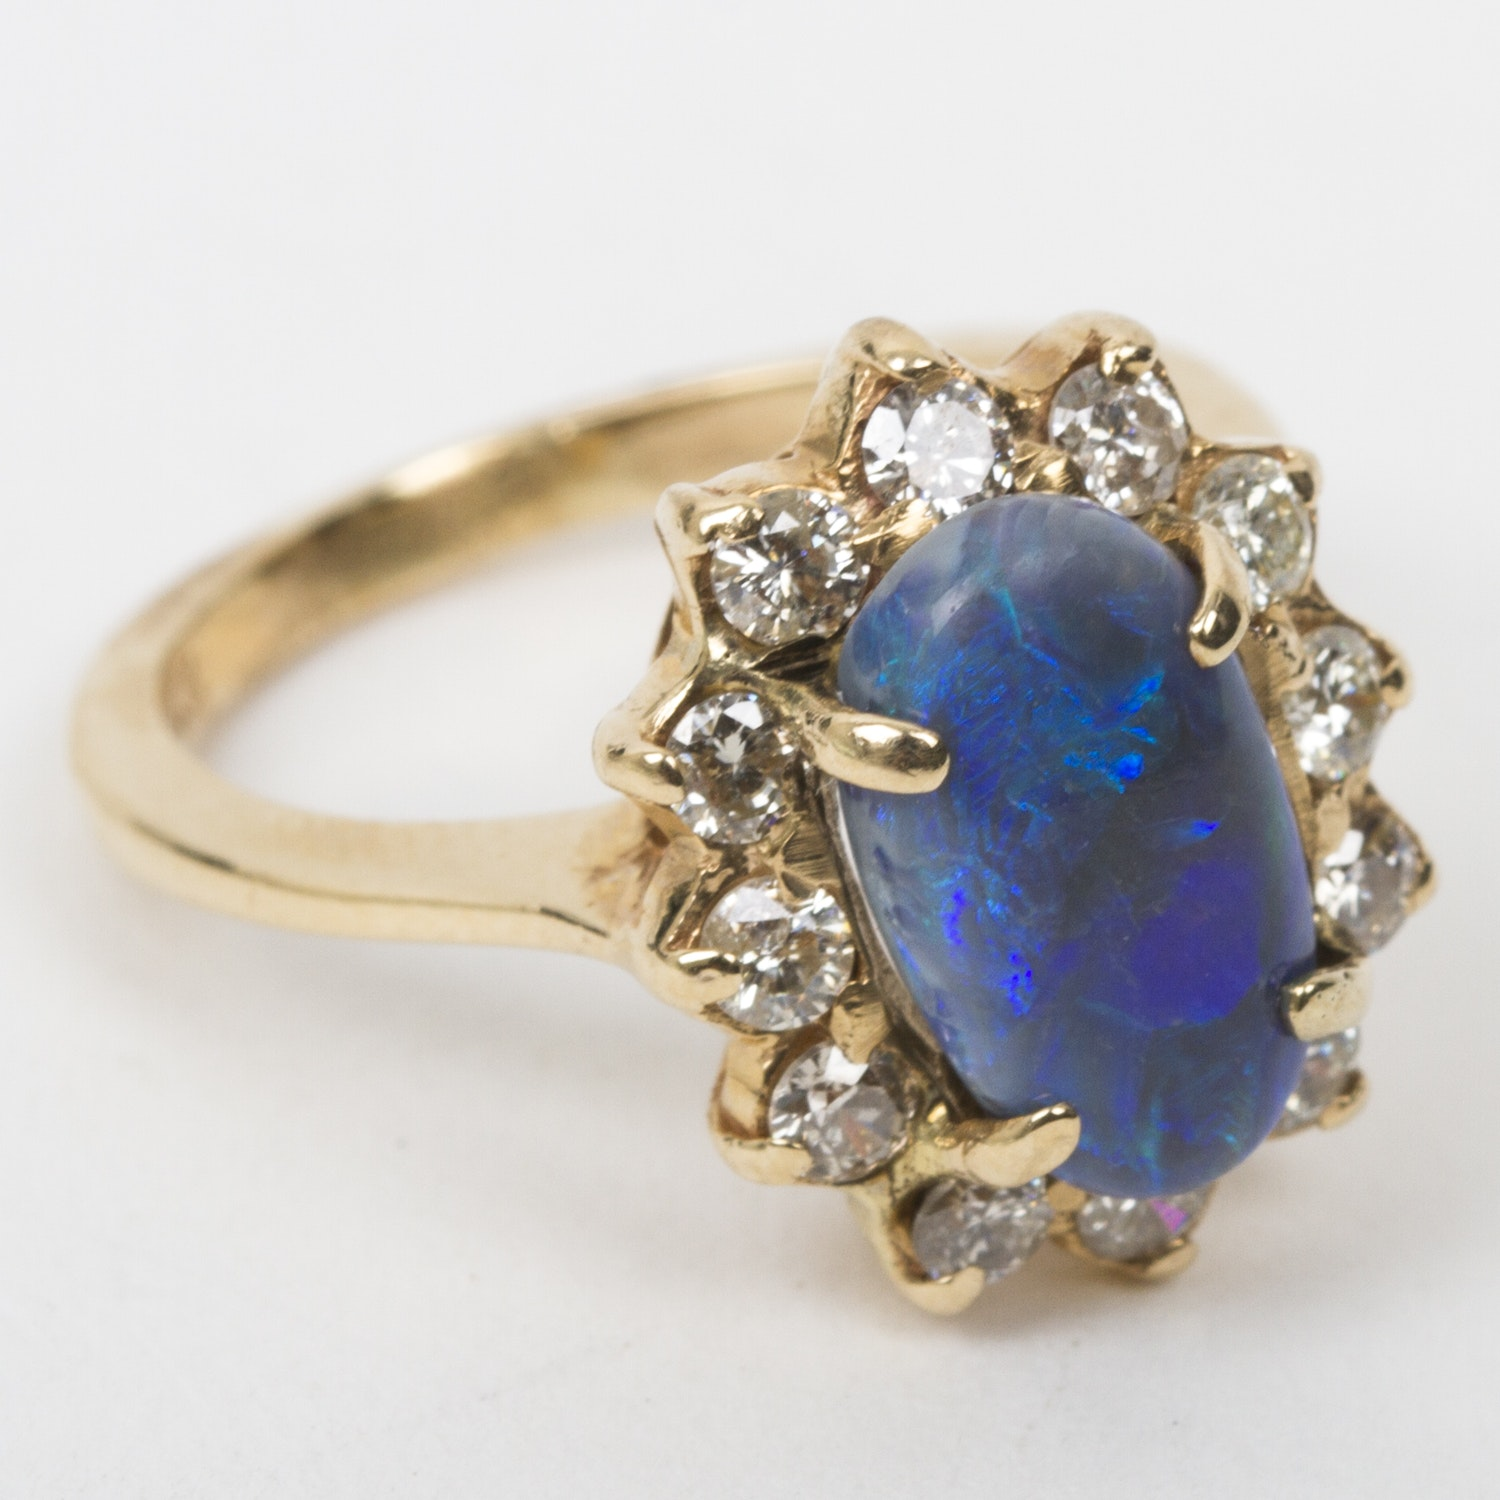 14K Yellow Gold, Gray Opal, and Diamond Halo Ring